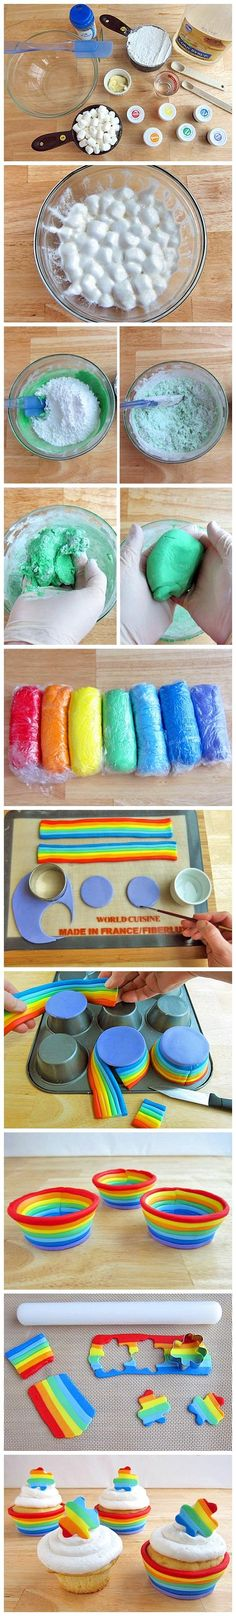 Ingredients 2 tablespoons shortening or butter 16 ounces mini marshmallows 4 tablespoons water 2 teaspoons corn syrup optional, flavored oil or extract 2 pounds confectioners (powdered) sugar paste or gel coloring – violet, indigo, blue, green, yellow, orange, red 12 baked cupcakes (baked in the same muffin tin you use to make the fondant cups) frosting optional decorations, gold luster dust, gold edible glitter, sprinkles